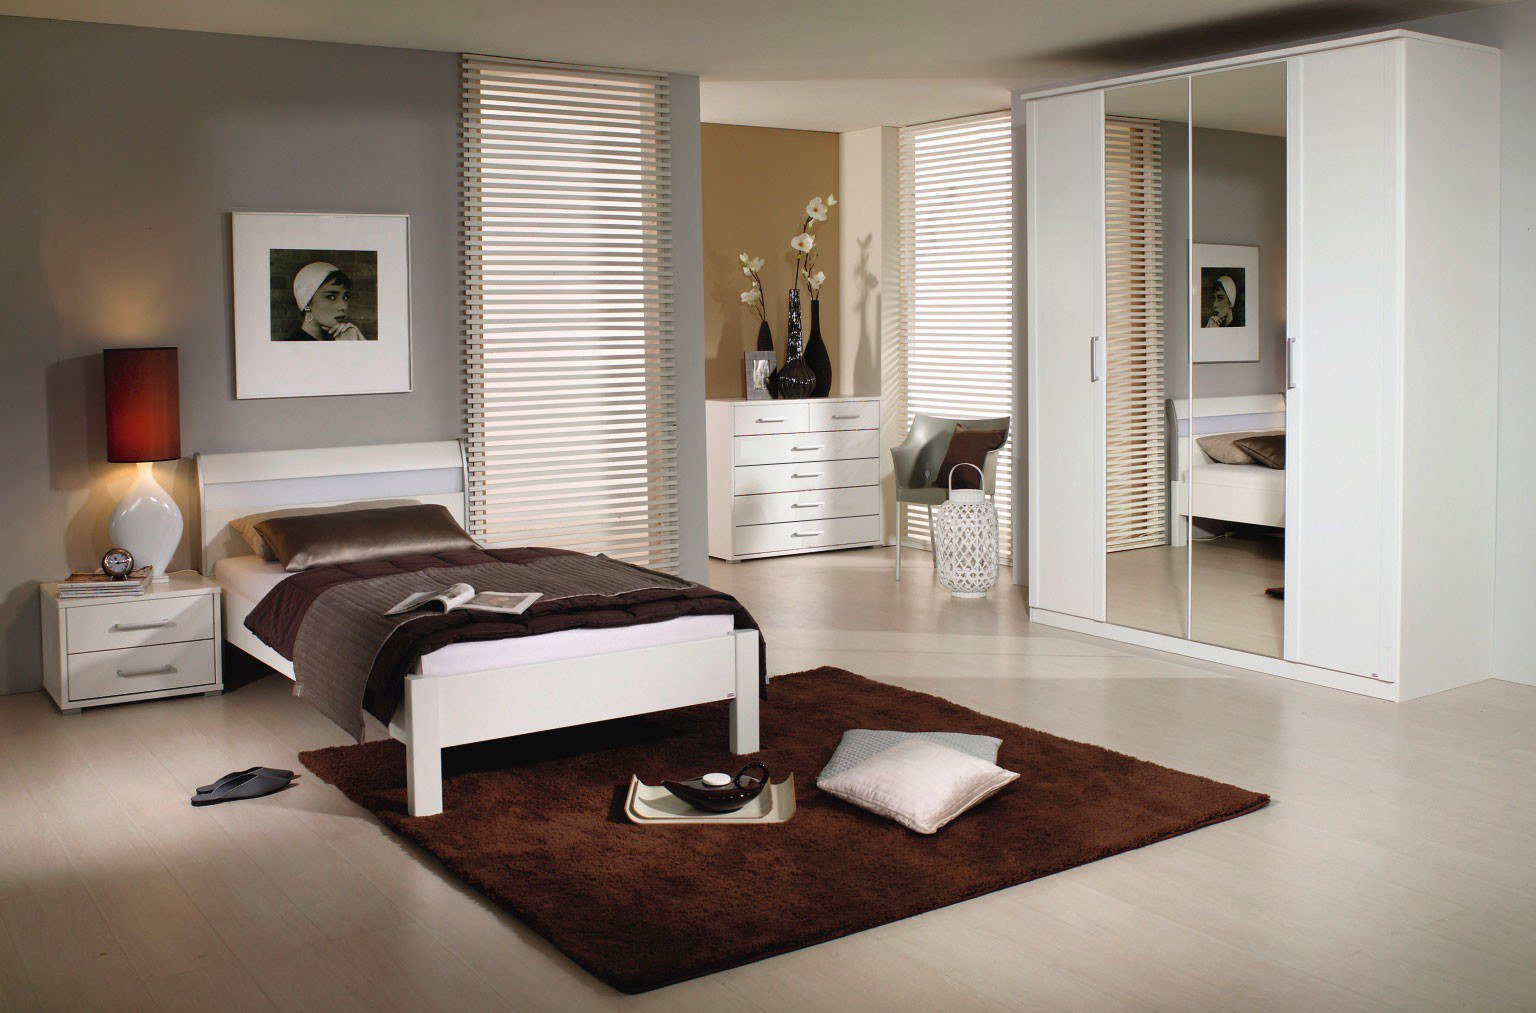 rauch annecy schlafzimmer set 3 teilig m bel letz ihr online shop. Black Bedroom Furniture Sets. Home Design Ideas